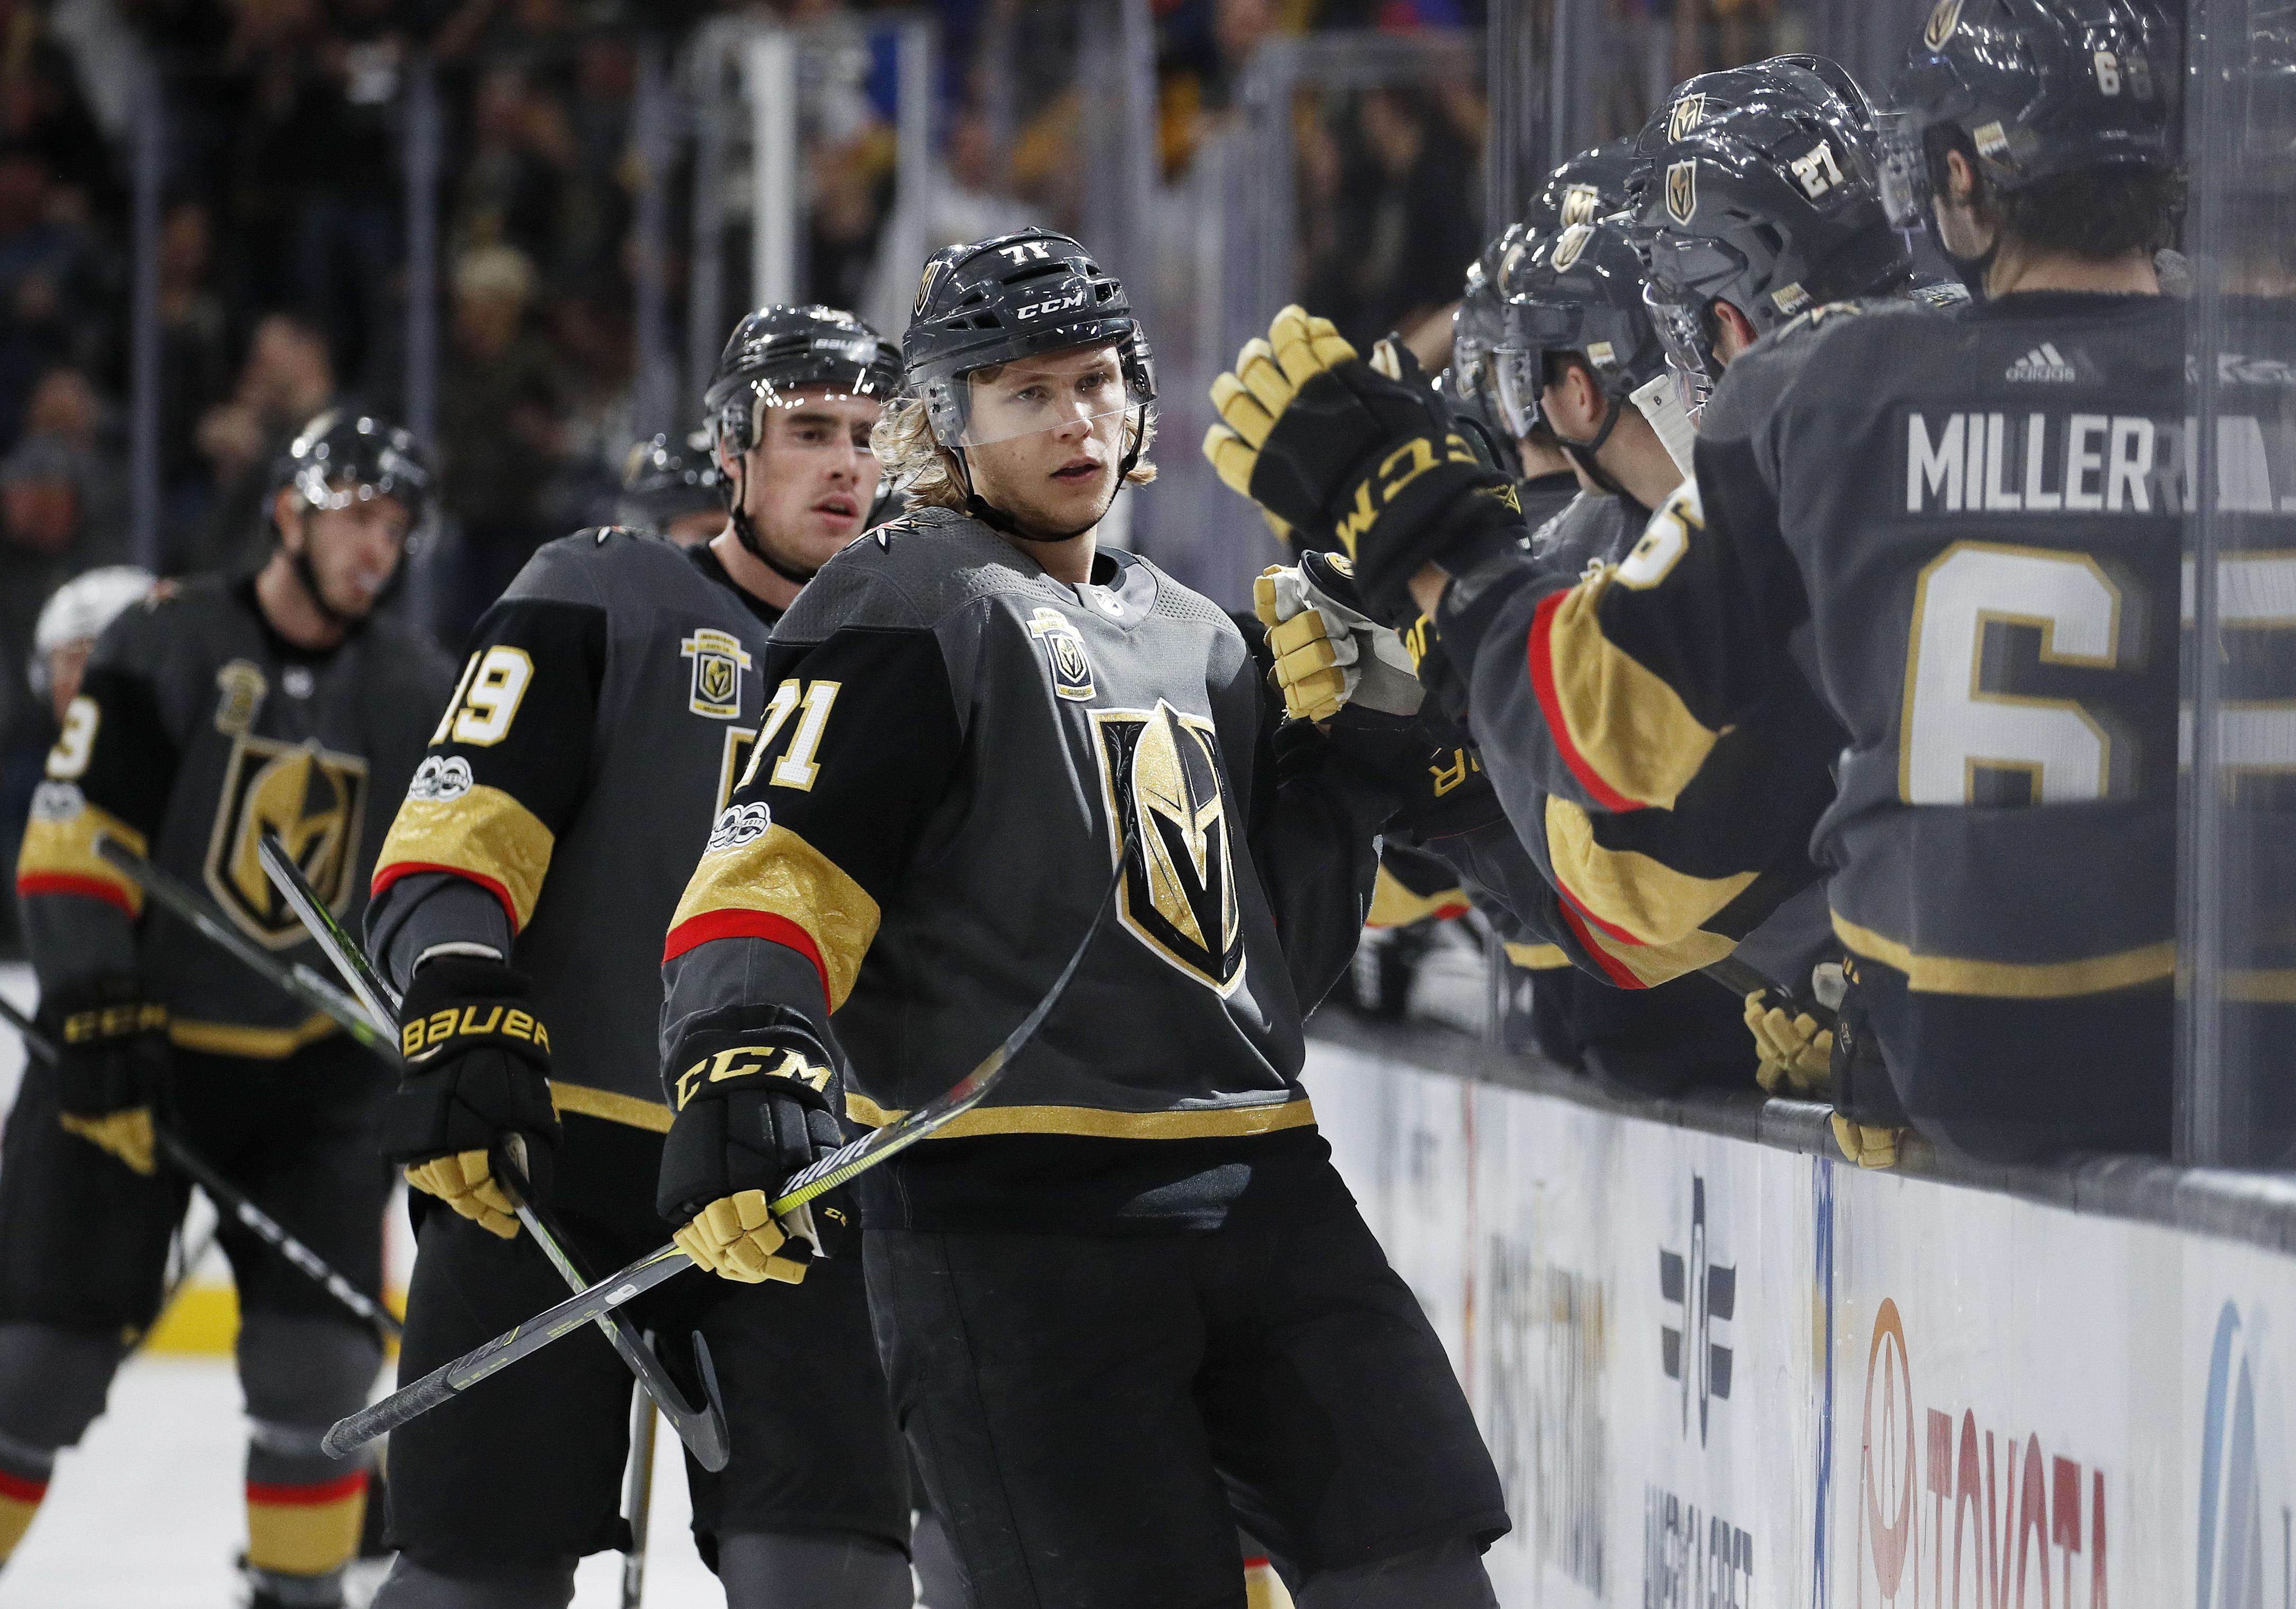 ef2d933e393 Vegas Golden Knights center William Karlsson, center, celebrates after  scoring against against the Los